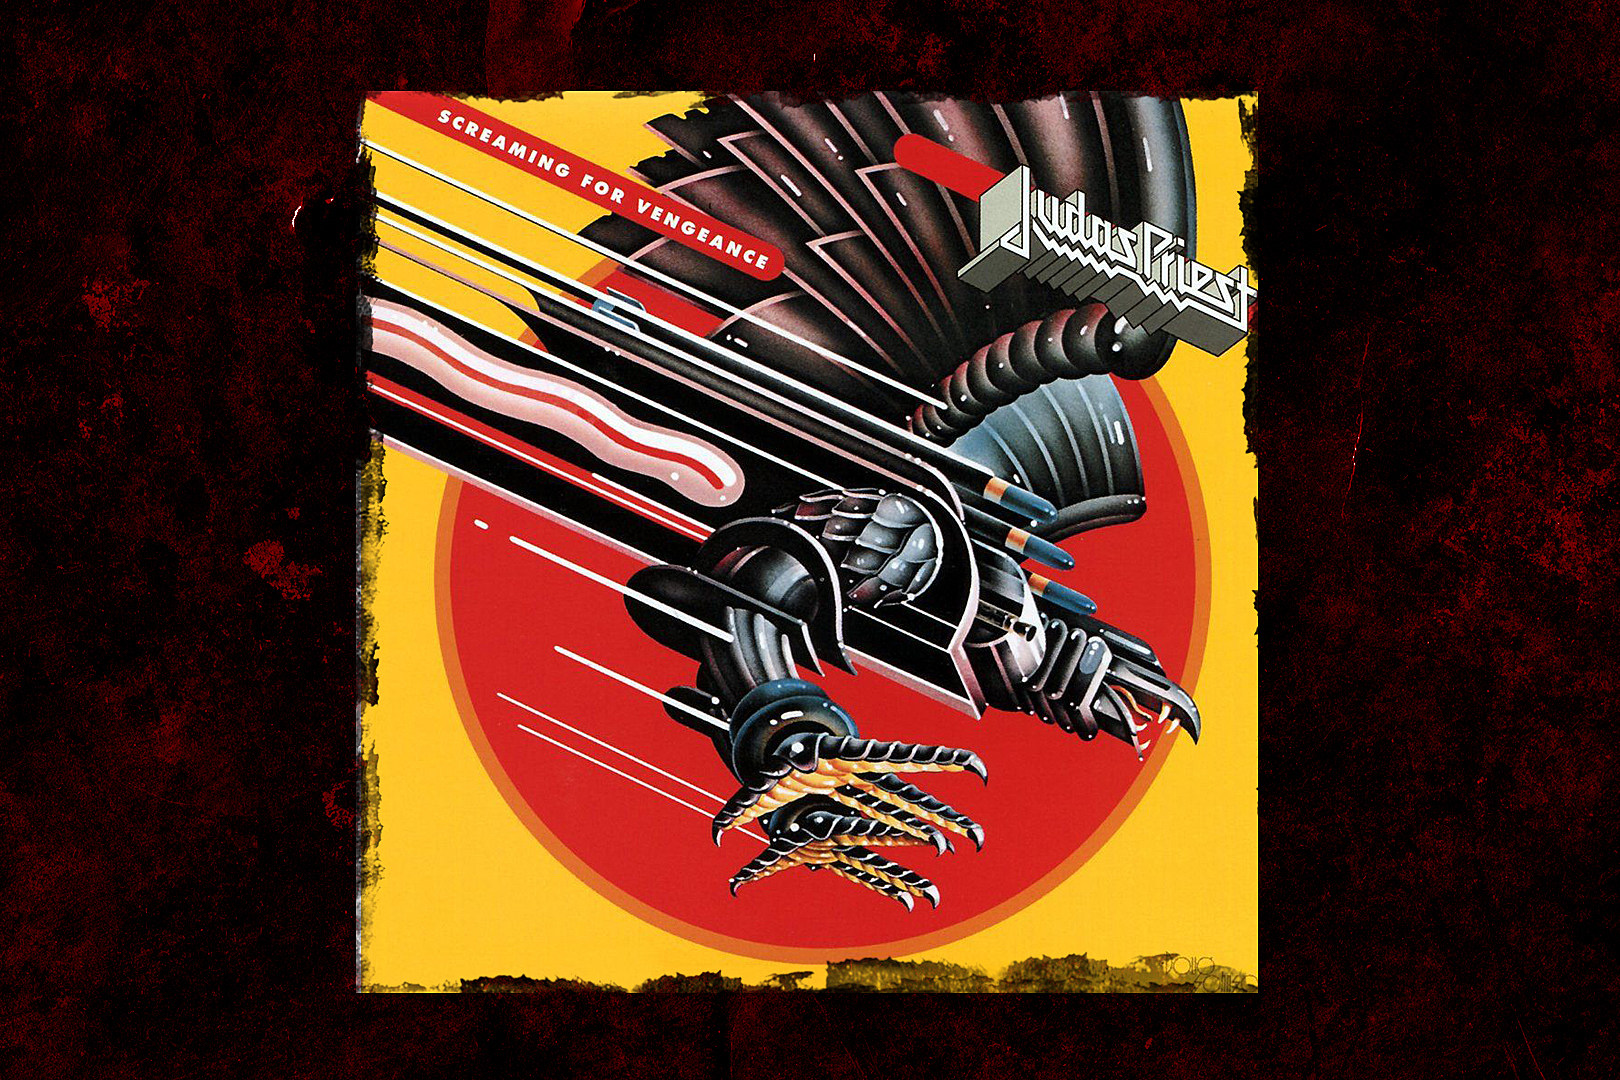 37 Years Ago Judas Priest Release Screaming For Vengeance